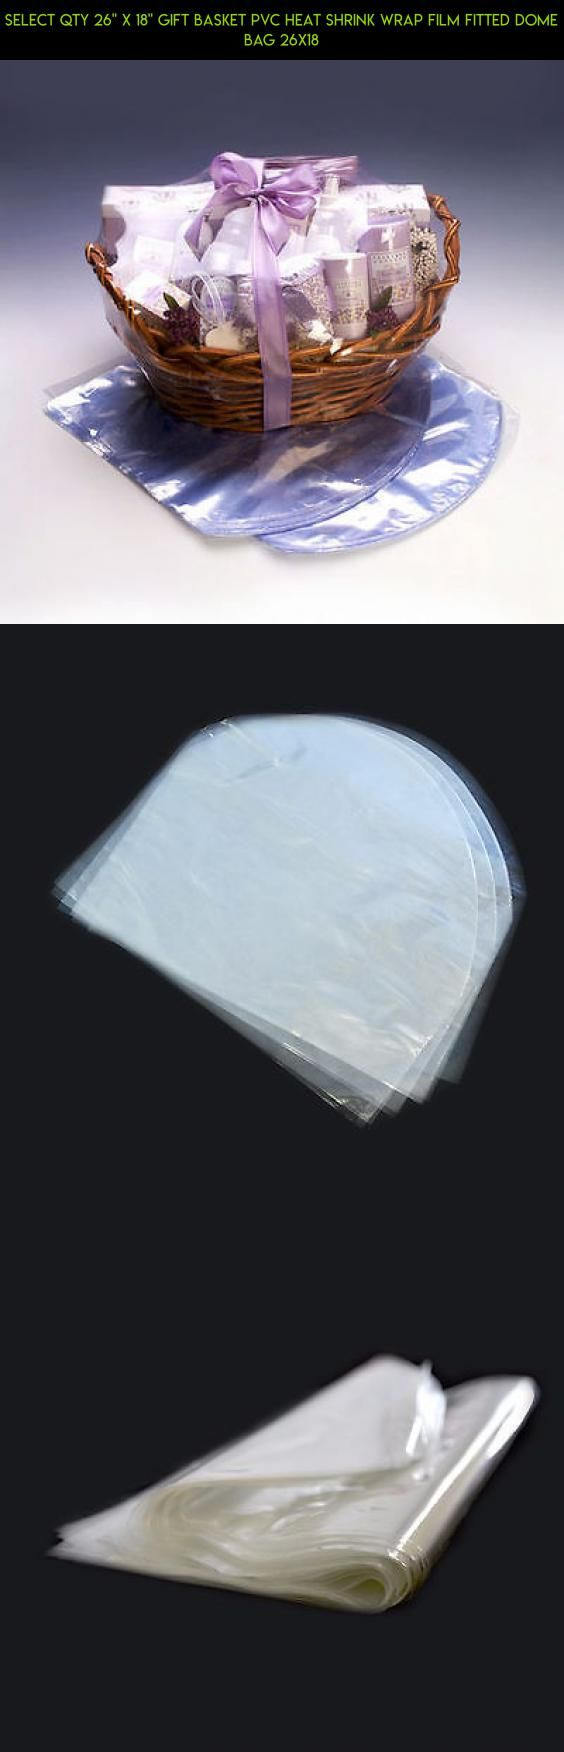 """SELECT QTY 26"""" x 18"""" Gift Basket PVC Heat Shrink Wrap Film Fitted Dome Bag 26x18 #camera #technology #shopping #products #fpv #plans #tech #drone #heating #gadgets #kit #racing #parts #bag"""